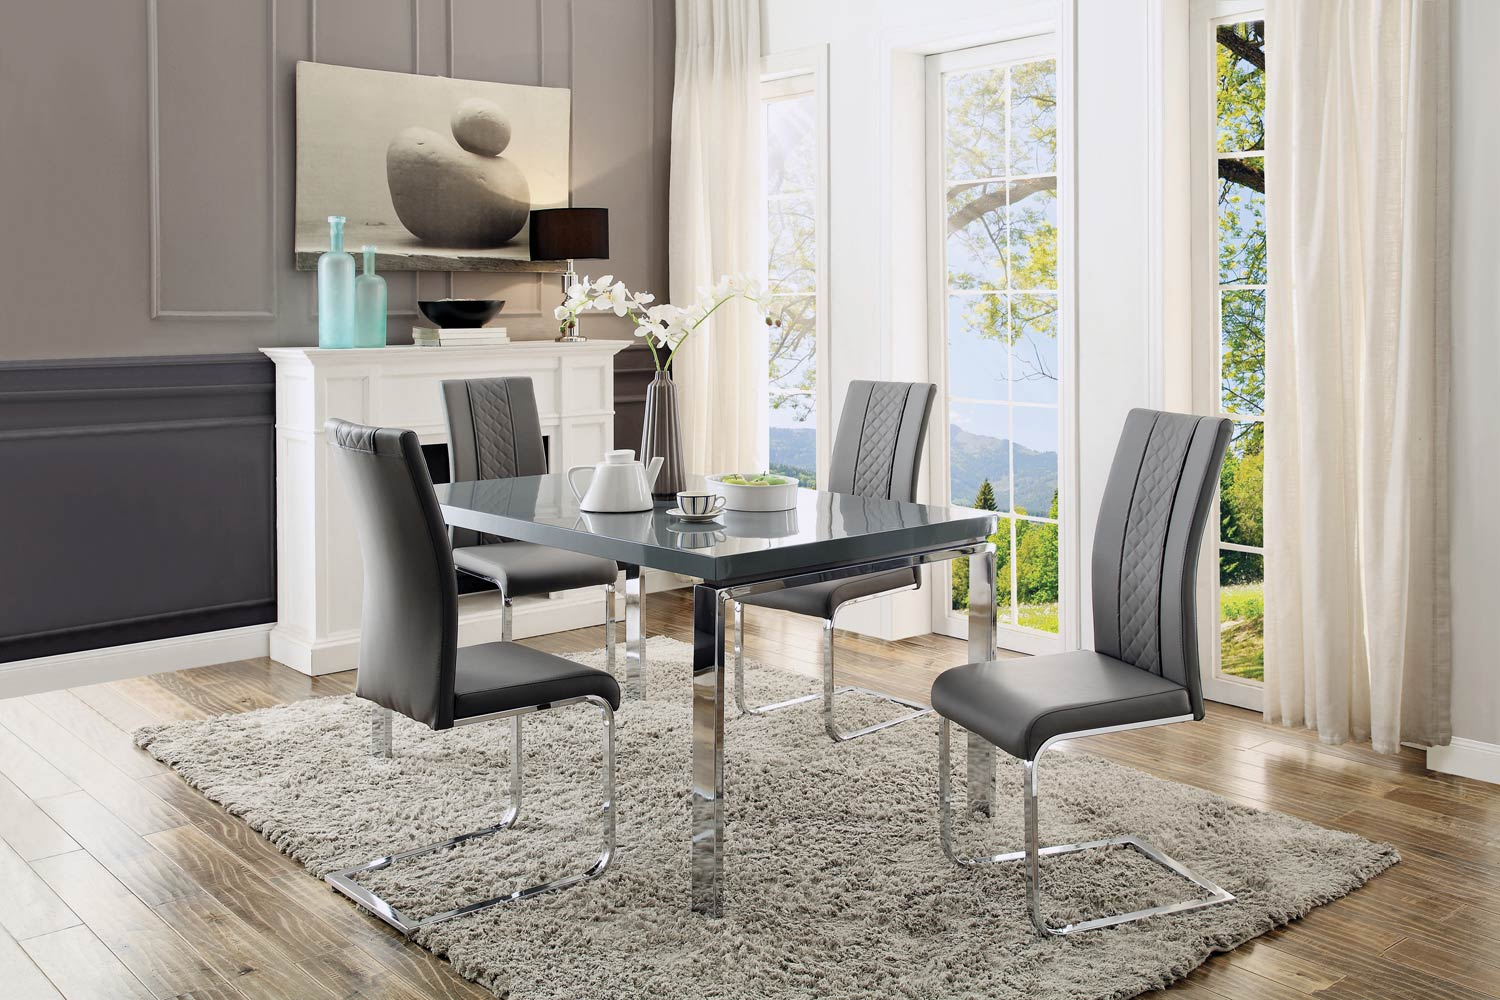 Beau Home Elegance Miami 5pc Dining Room Set Click To Enlarge ...